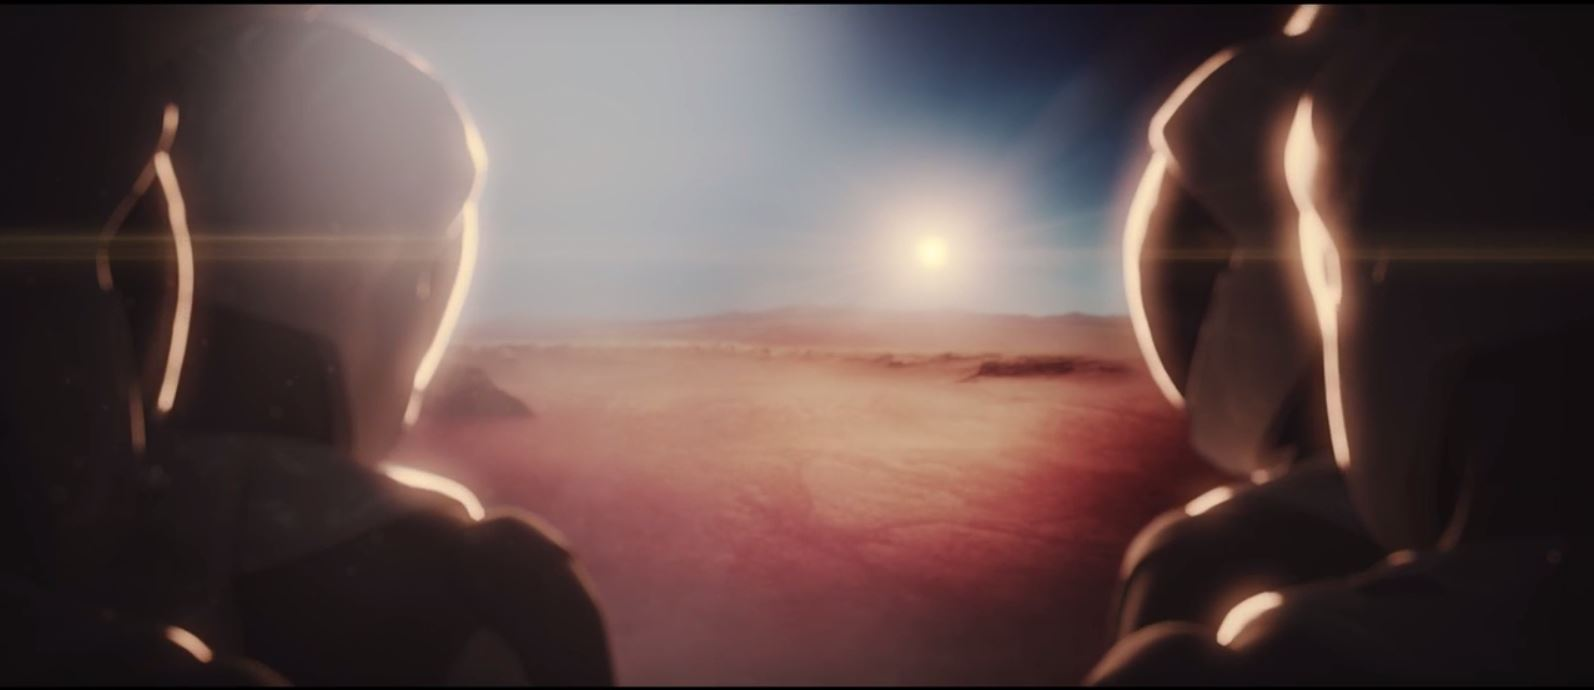 Breathtaking Video Shows How SpaceX Will Send People to Mars